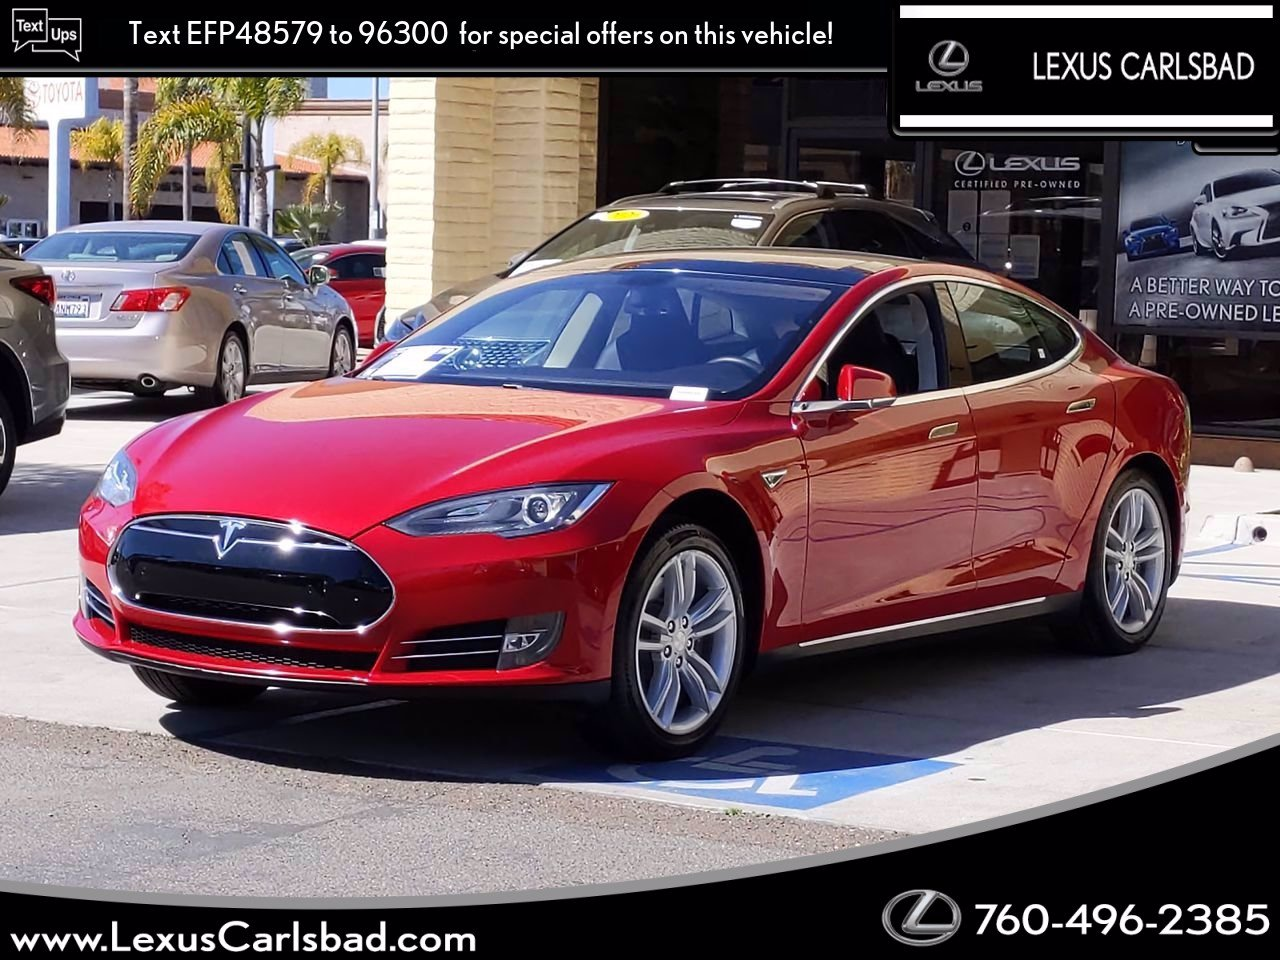 Used Tesla Model S Carlsbad Ca